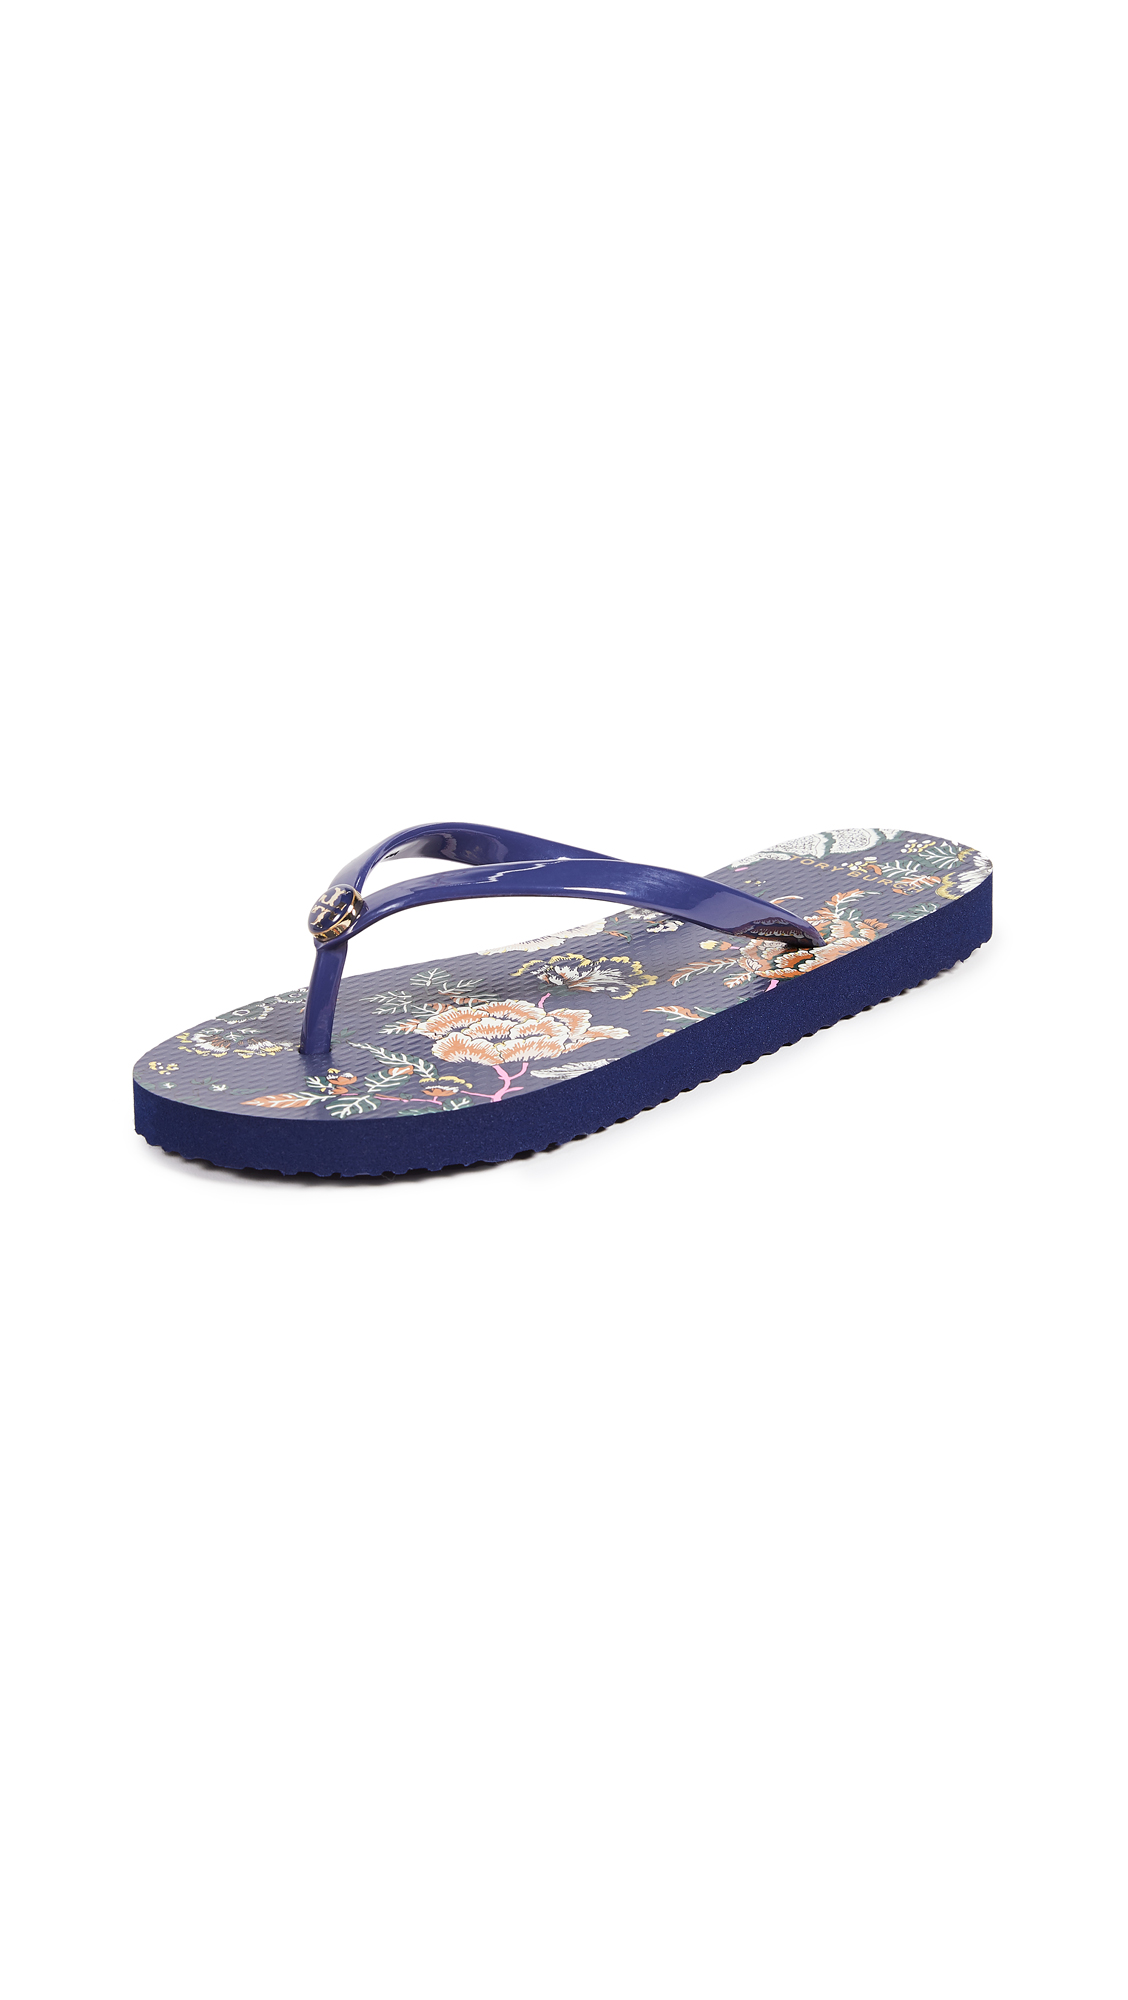 Tory Burch Thin Flip Flops - Montauk Navy/Happy Times